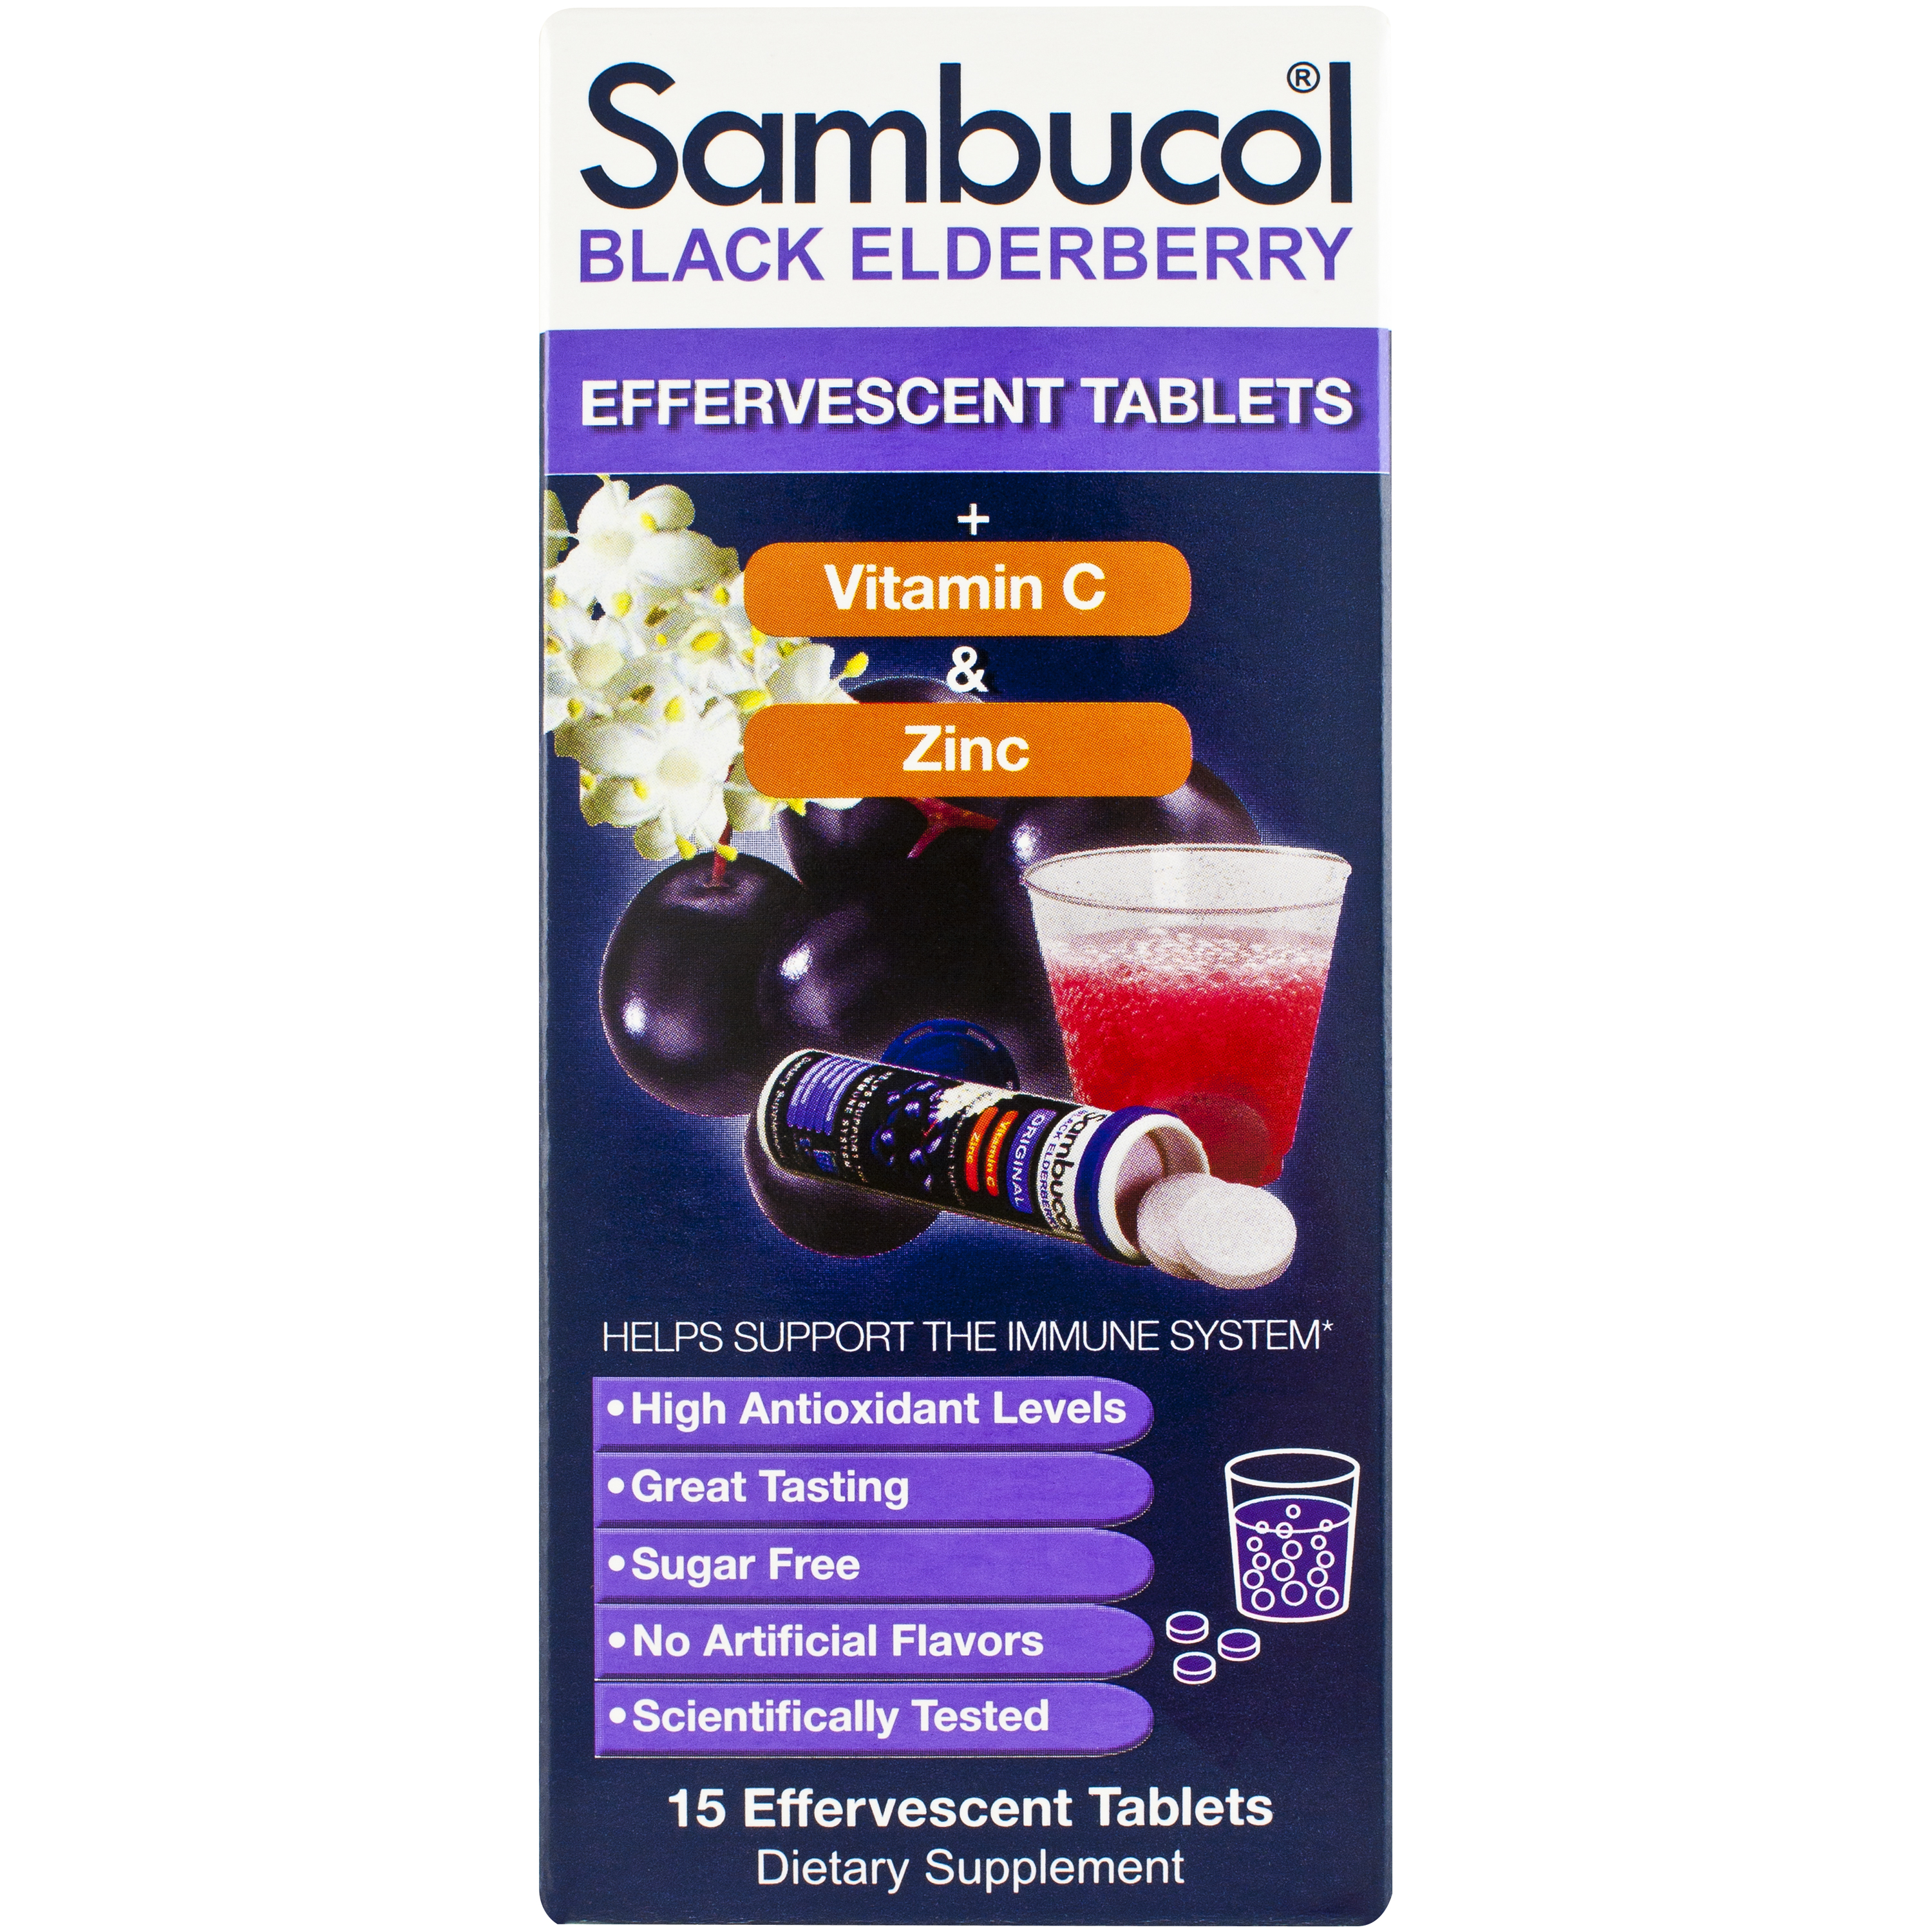 Sambucol Black Elderberry + Vitamin C + Zinc Dietary Supplement Effervescent Tablets, 15 count